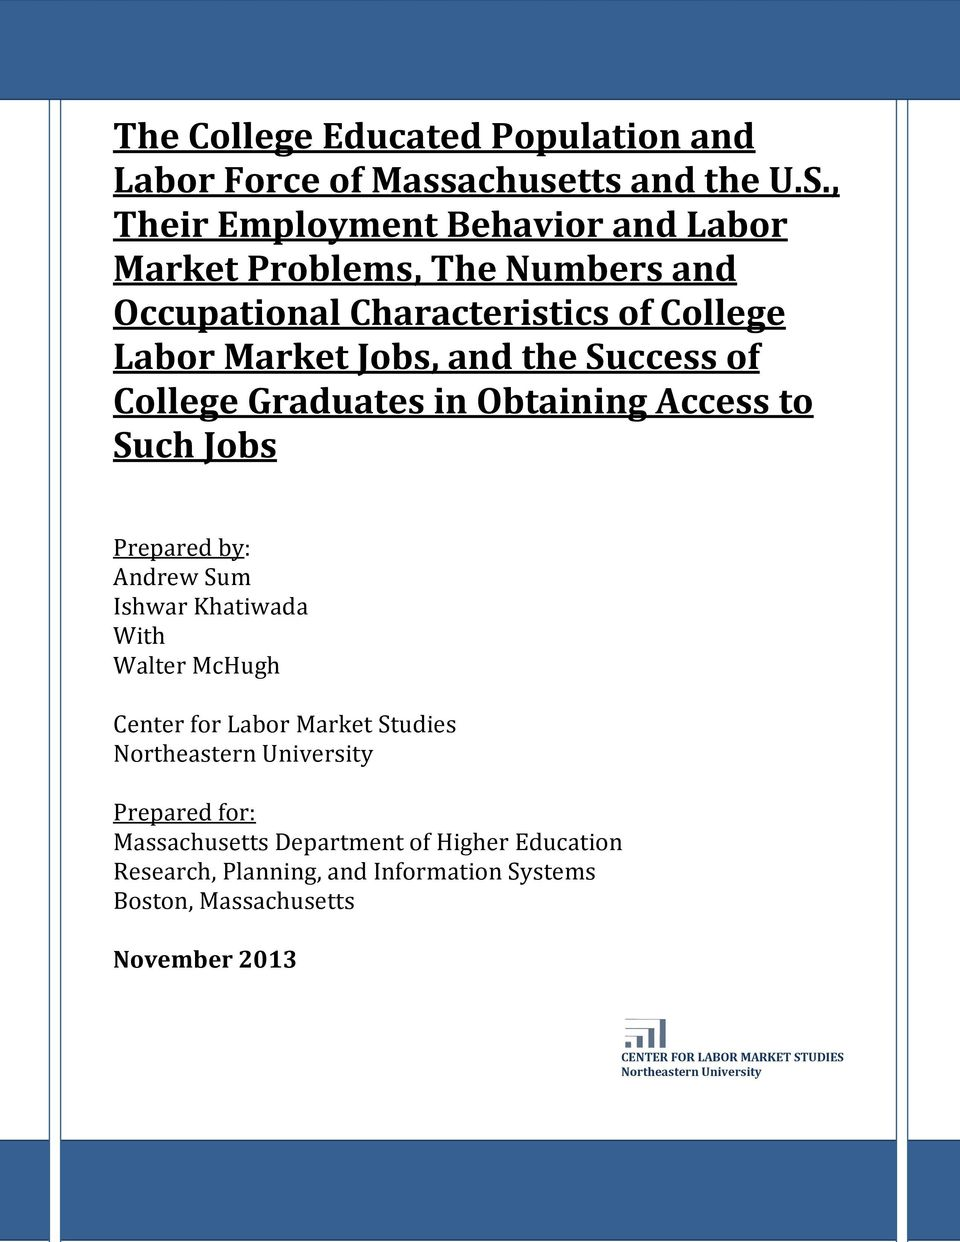 of College Graduates in Obtaining Access to Such Jobs Prepared by: Andrew Sum Ishwar Khatiwada With Walter McHugh Center for Labor Market Studies